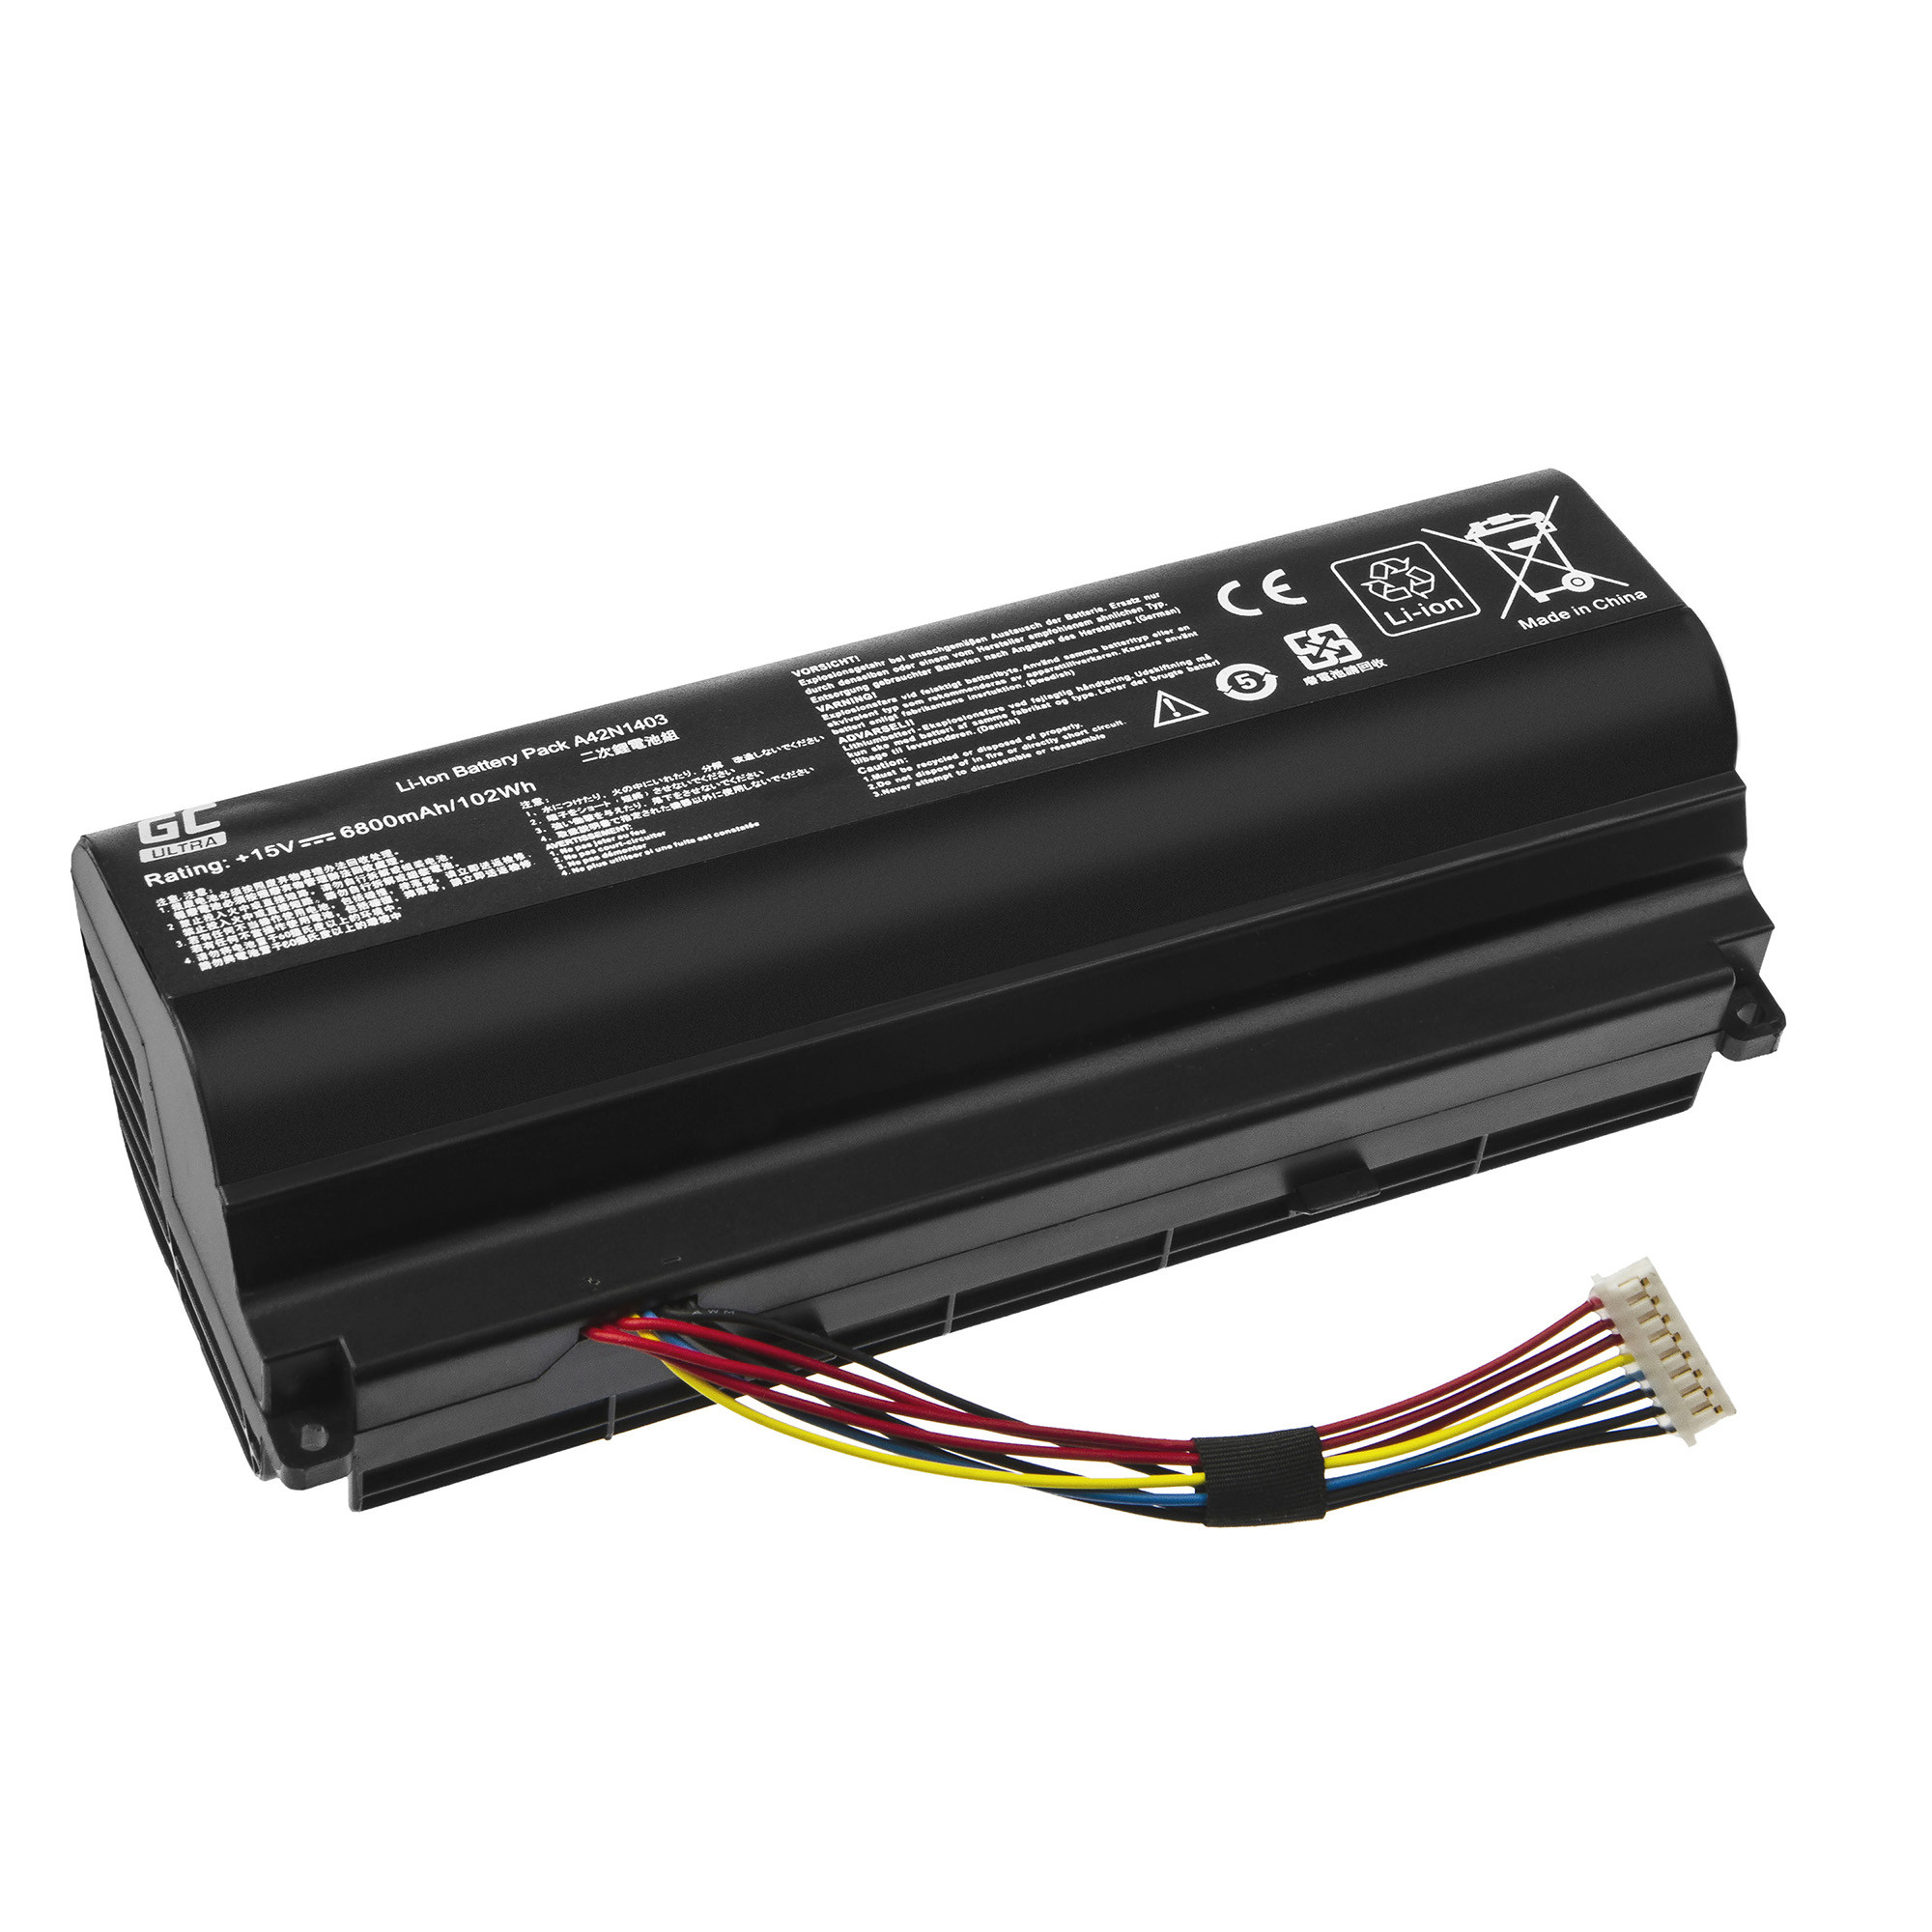 Green Cell AS128ULTRA Baterie Asus A42N1403, Asus ROG G751 G751J G751JL G751JM G751JT G751JY 6800mAh Li-ion - neoriginální